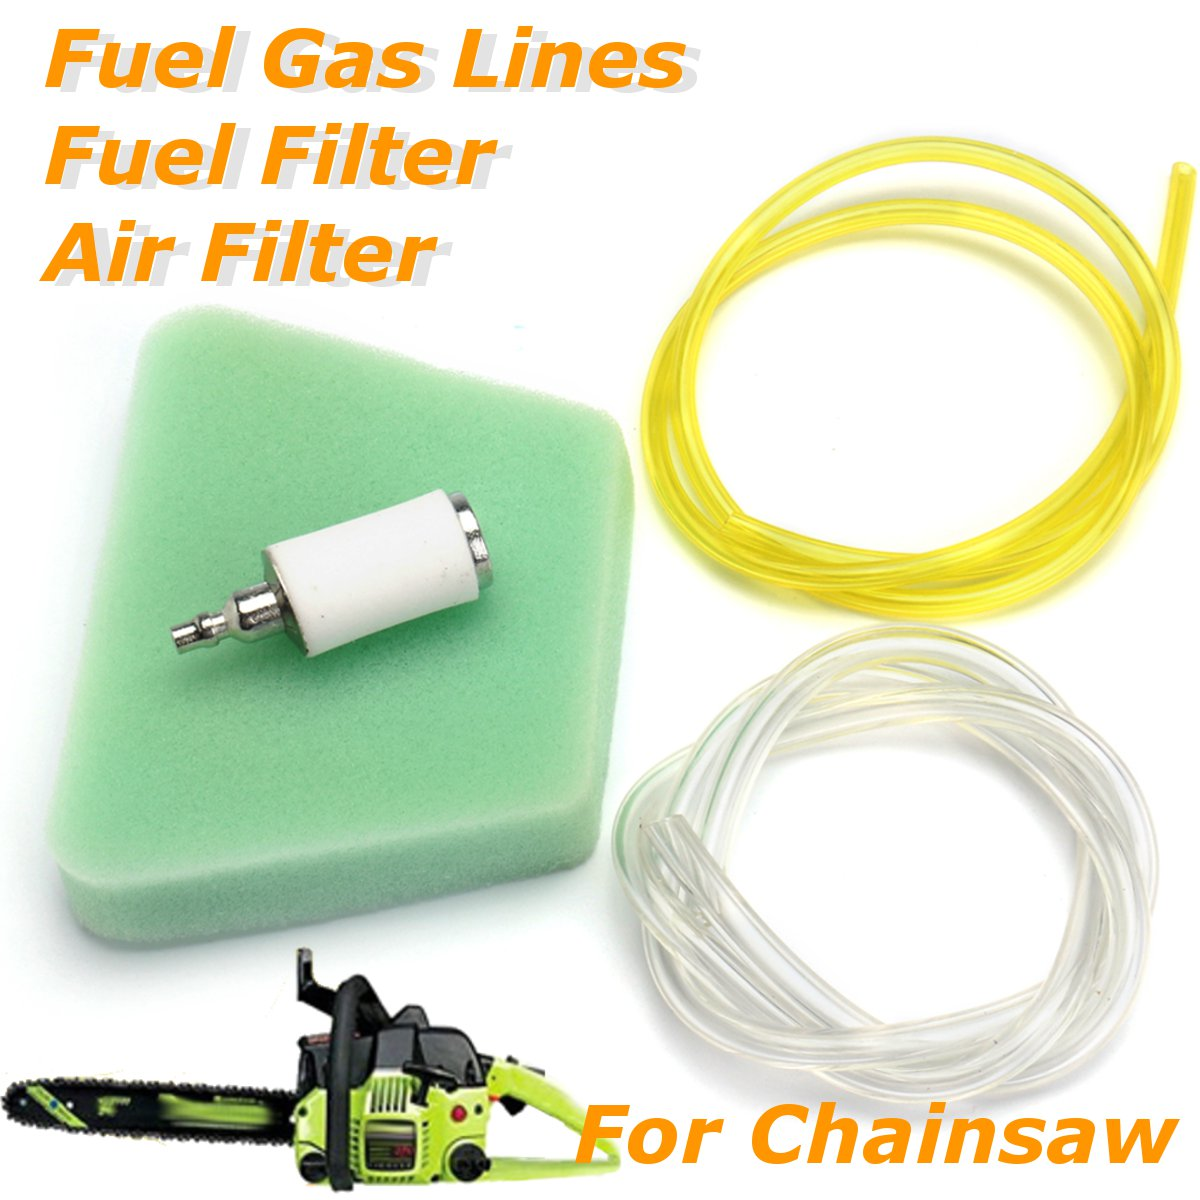 hight resolution of air filter fuel line fuel filter for poulan craftsman chainsaw